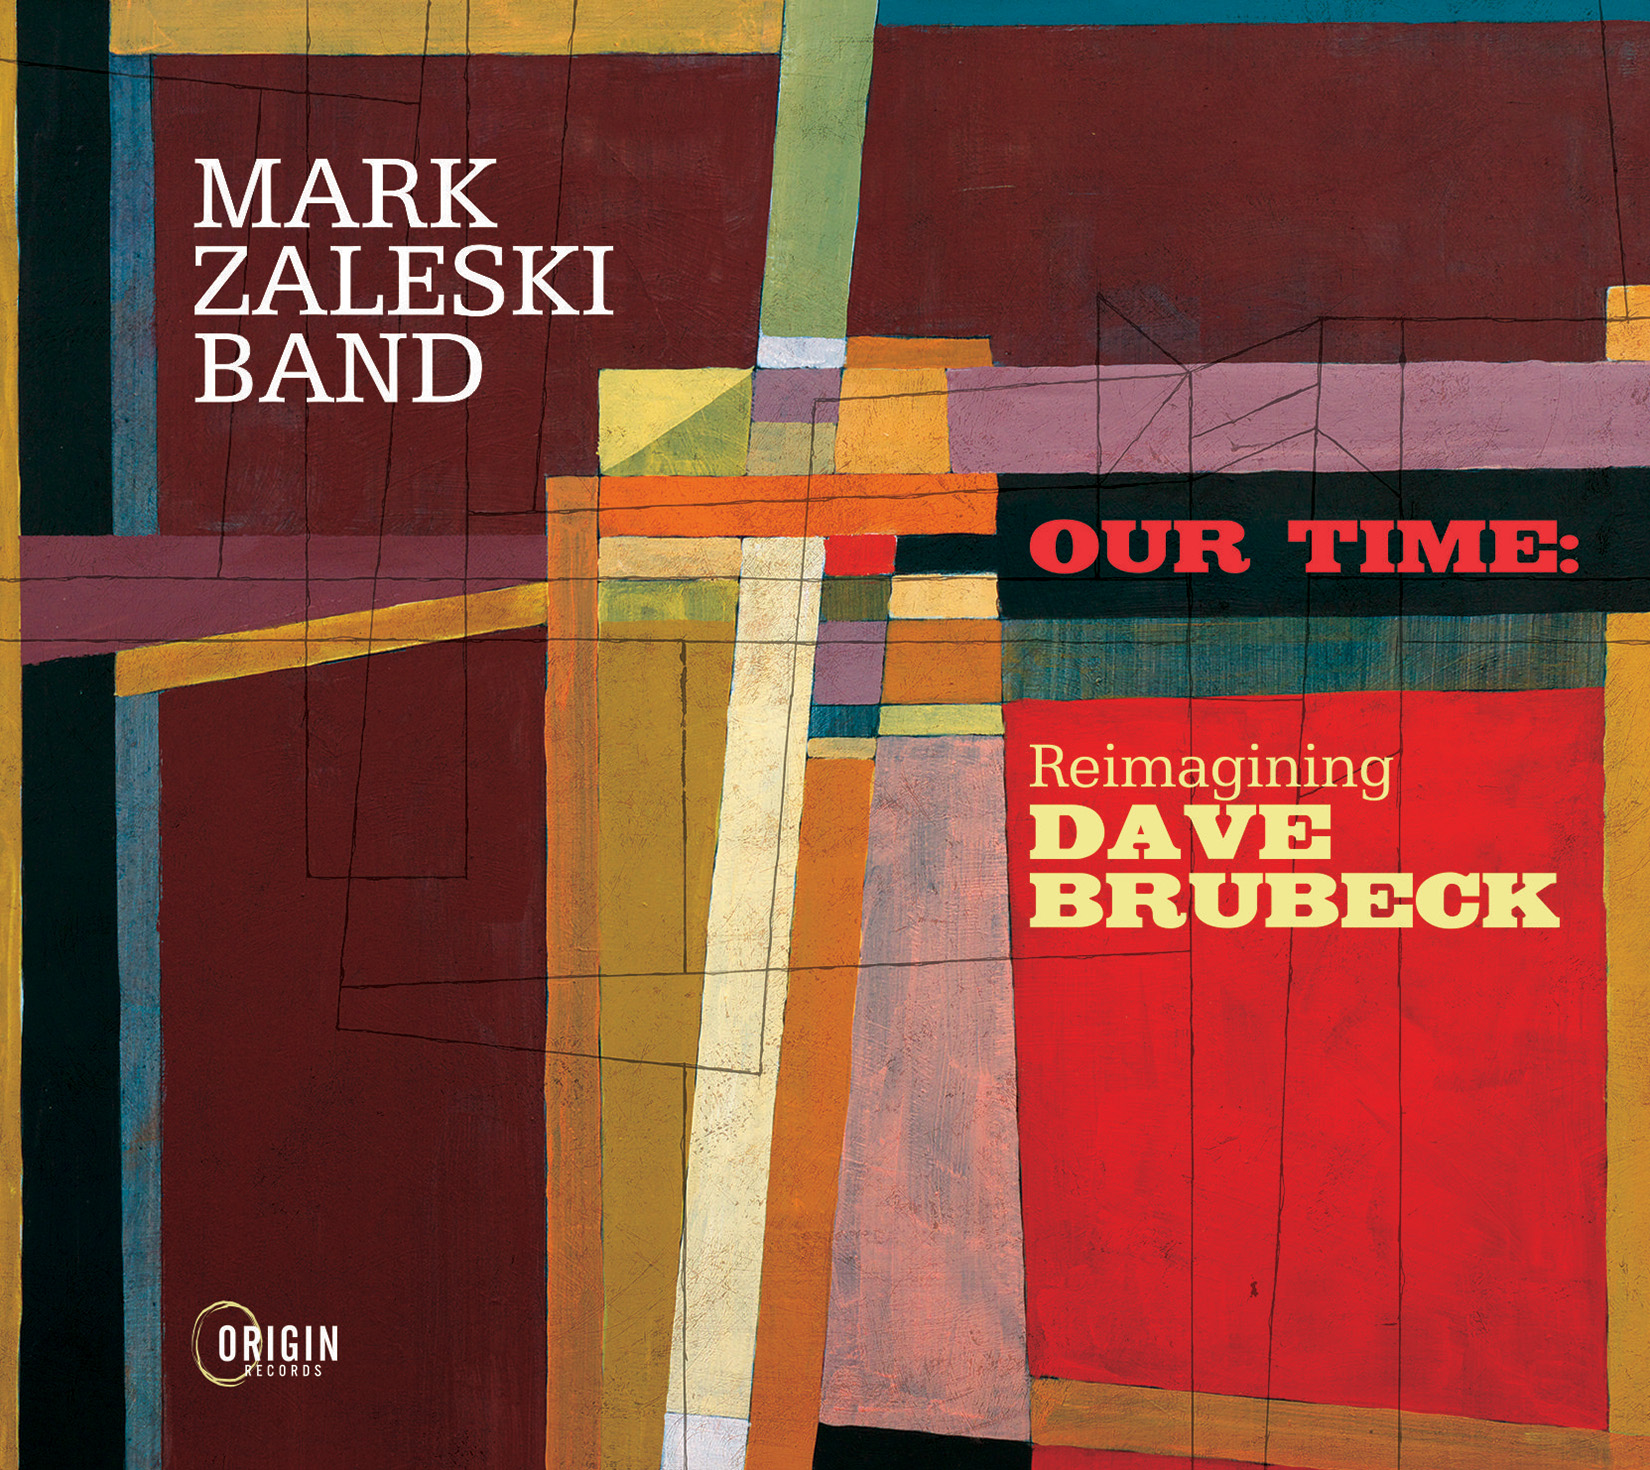 REVIEW: Mark Zaleski's 'Our Time: Reimagining Dave Brubeck' – Making A Scene